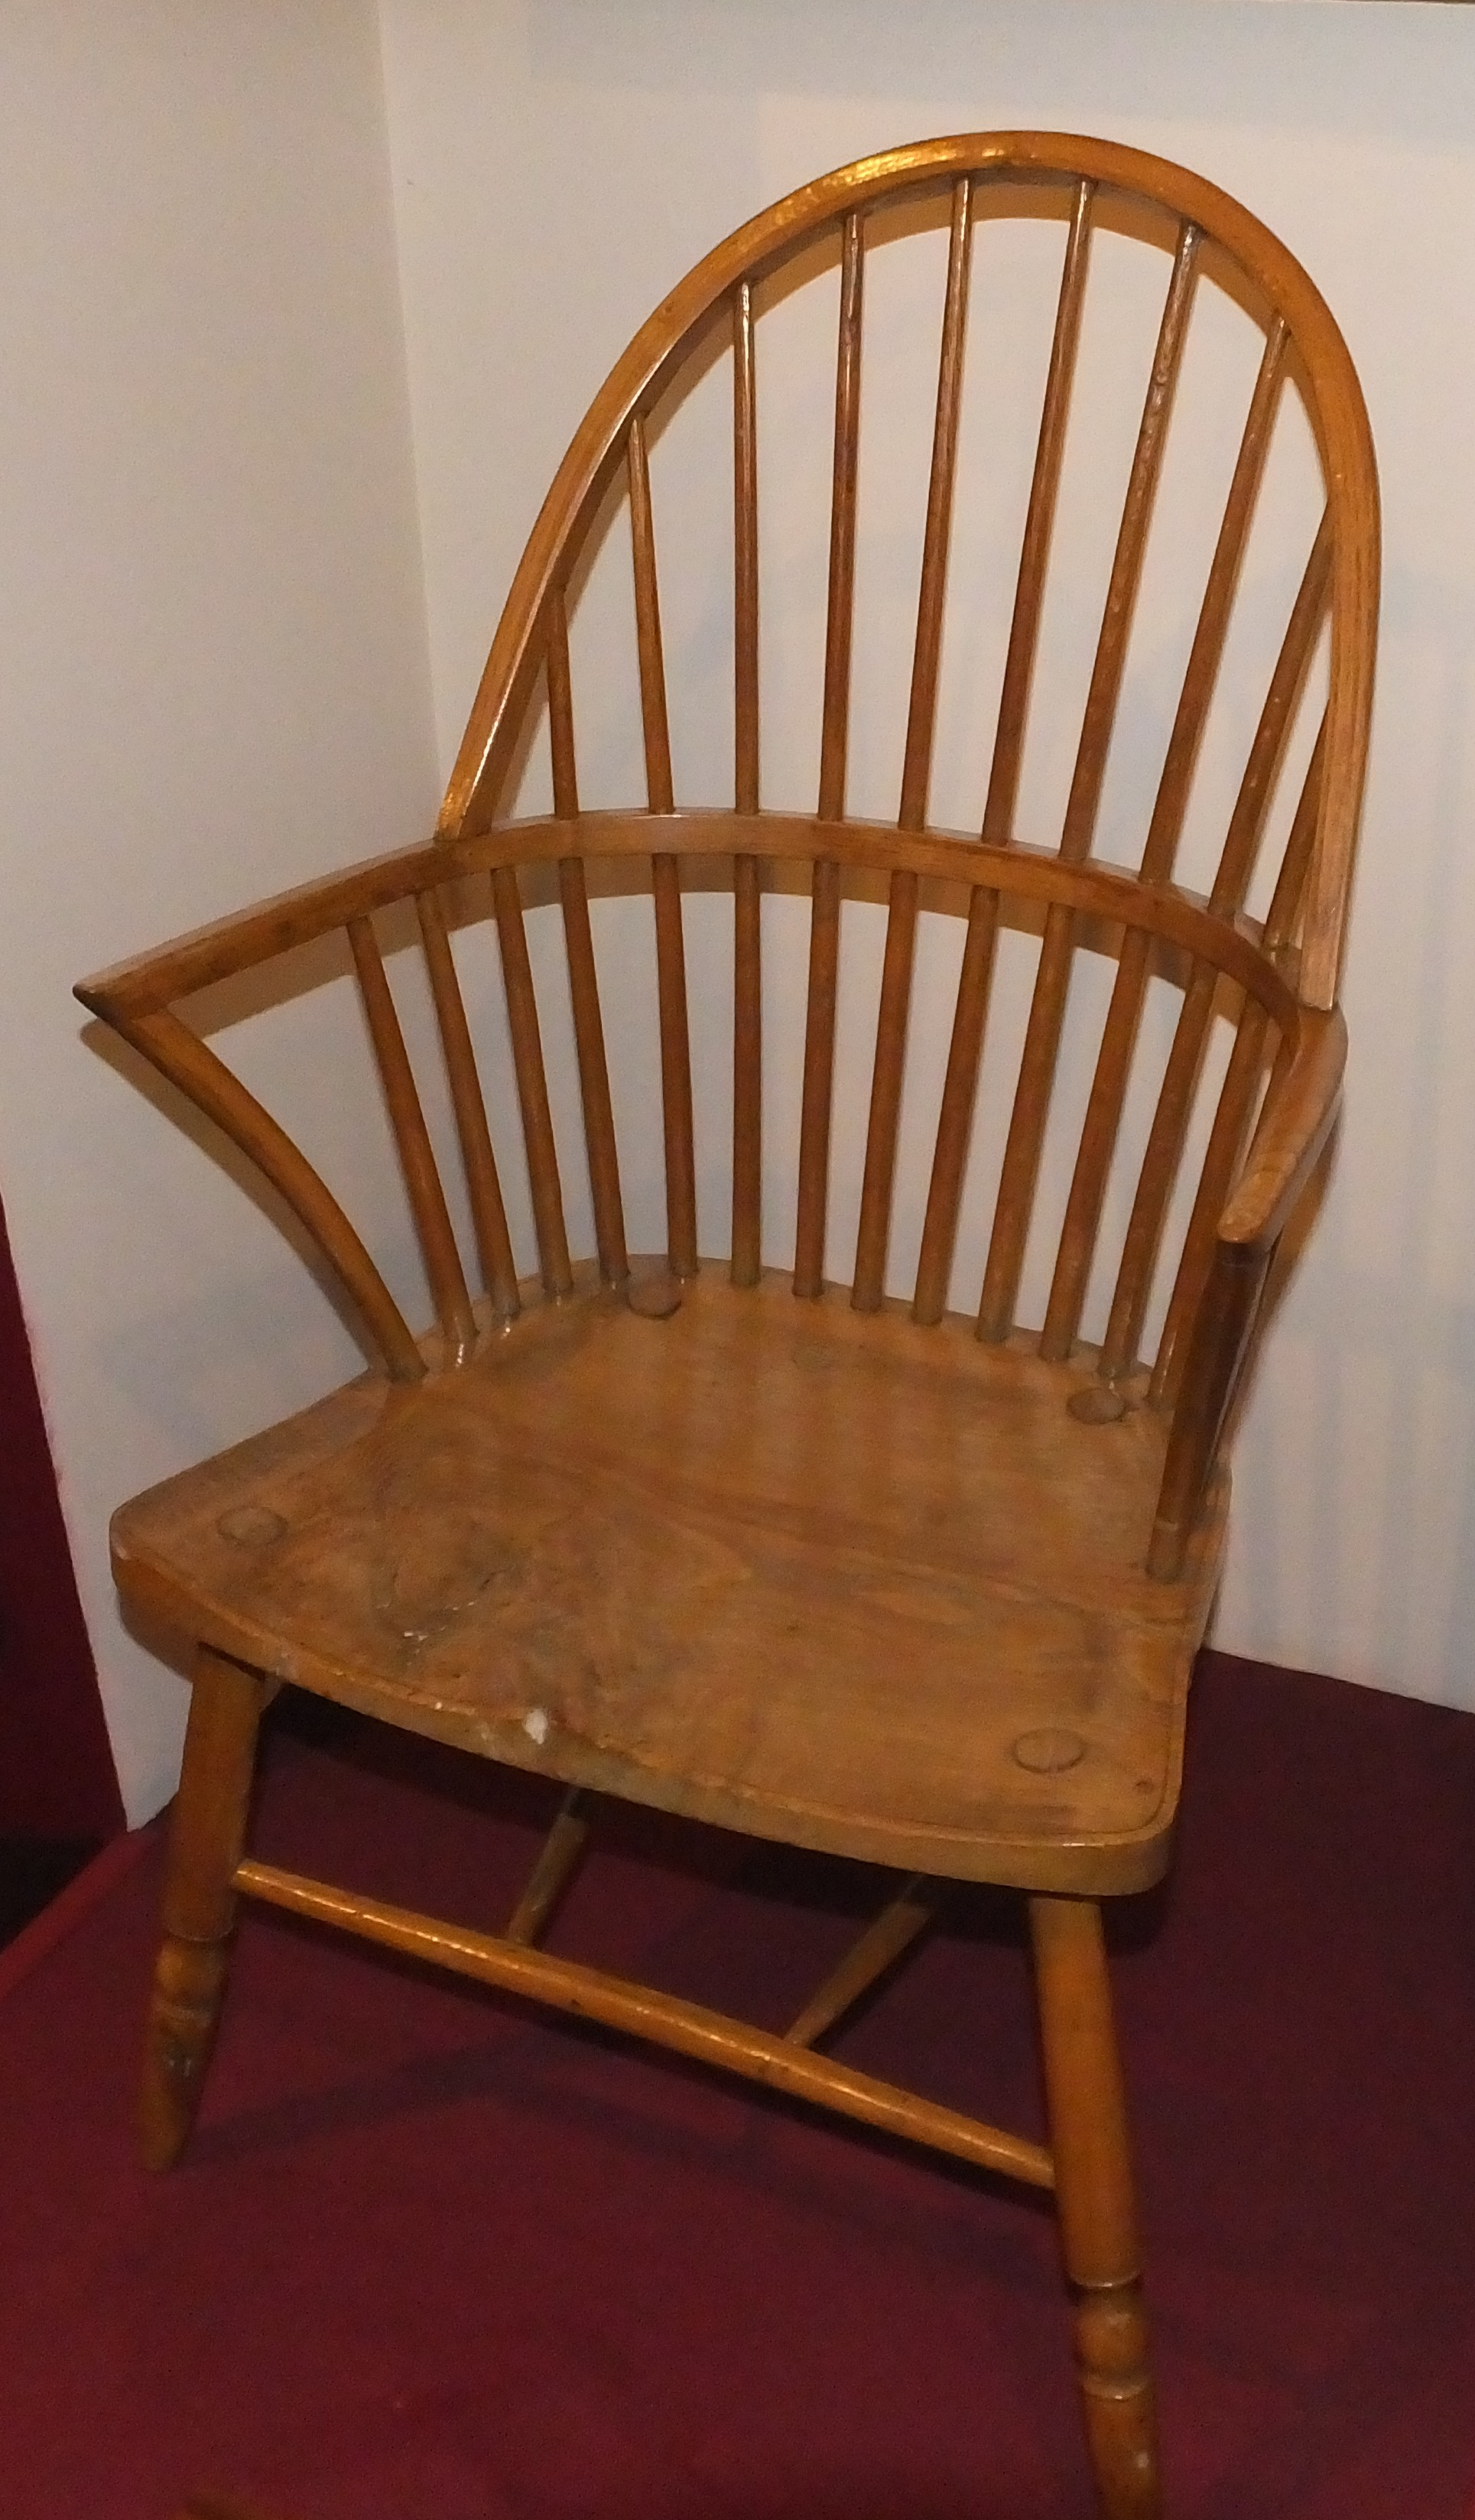 File Judges Lodgings 2014 GLAM Gillows Windsor chair 1890 Ash